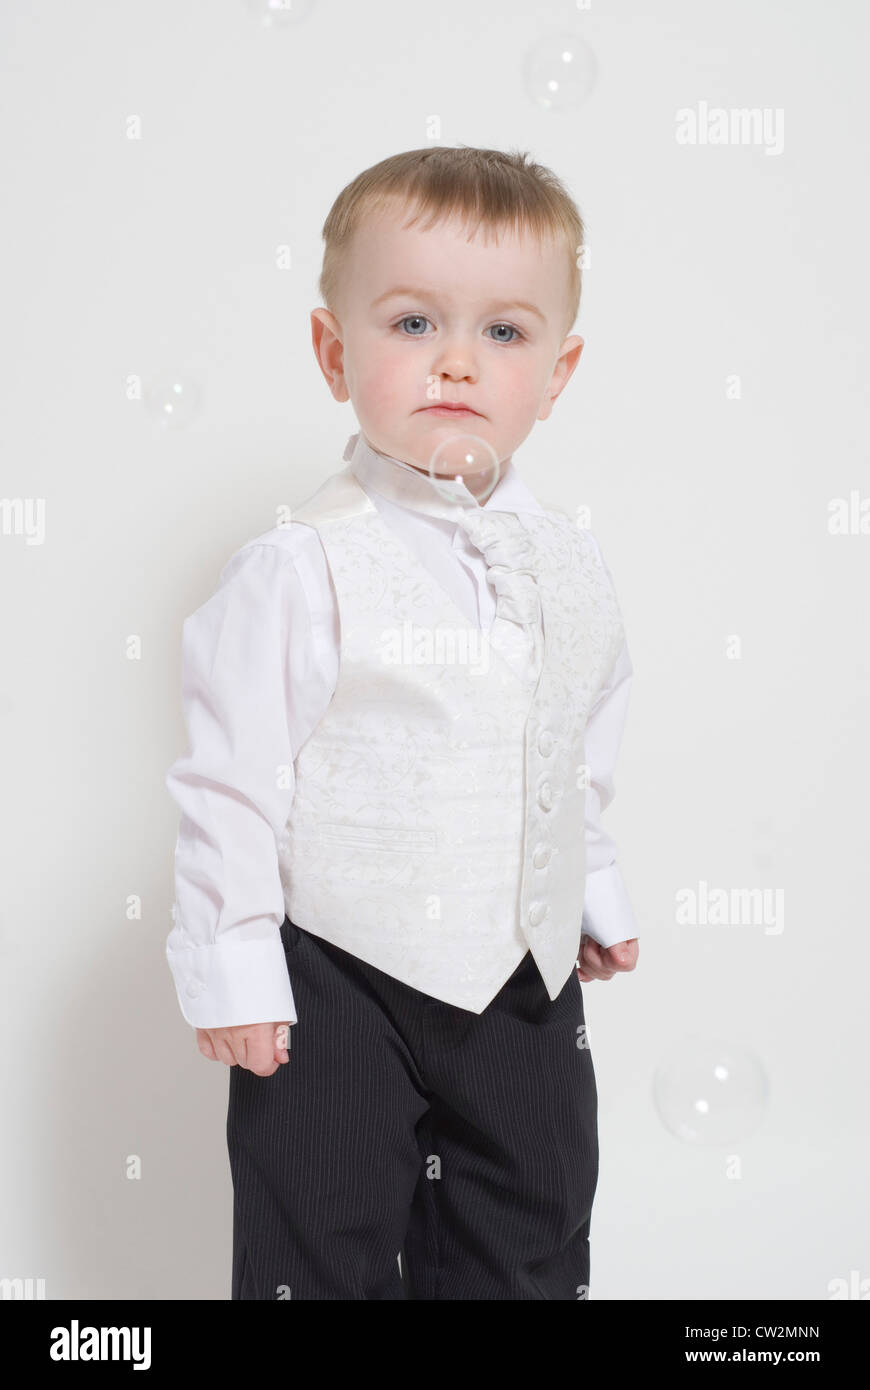 Little Boy, Toddler, Unamused by Bubbles, Dressed up in Smart Suit & Waistcoat, Studio Portrait Cut Out on White - Stock Image